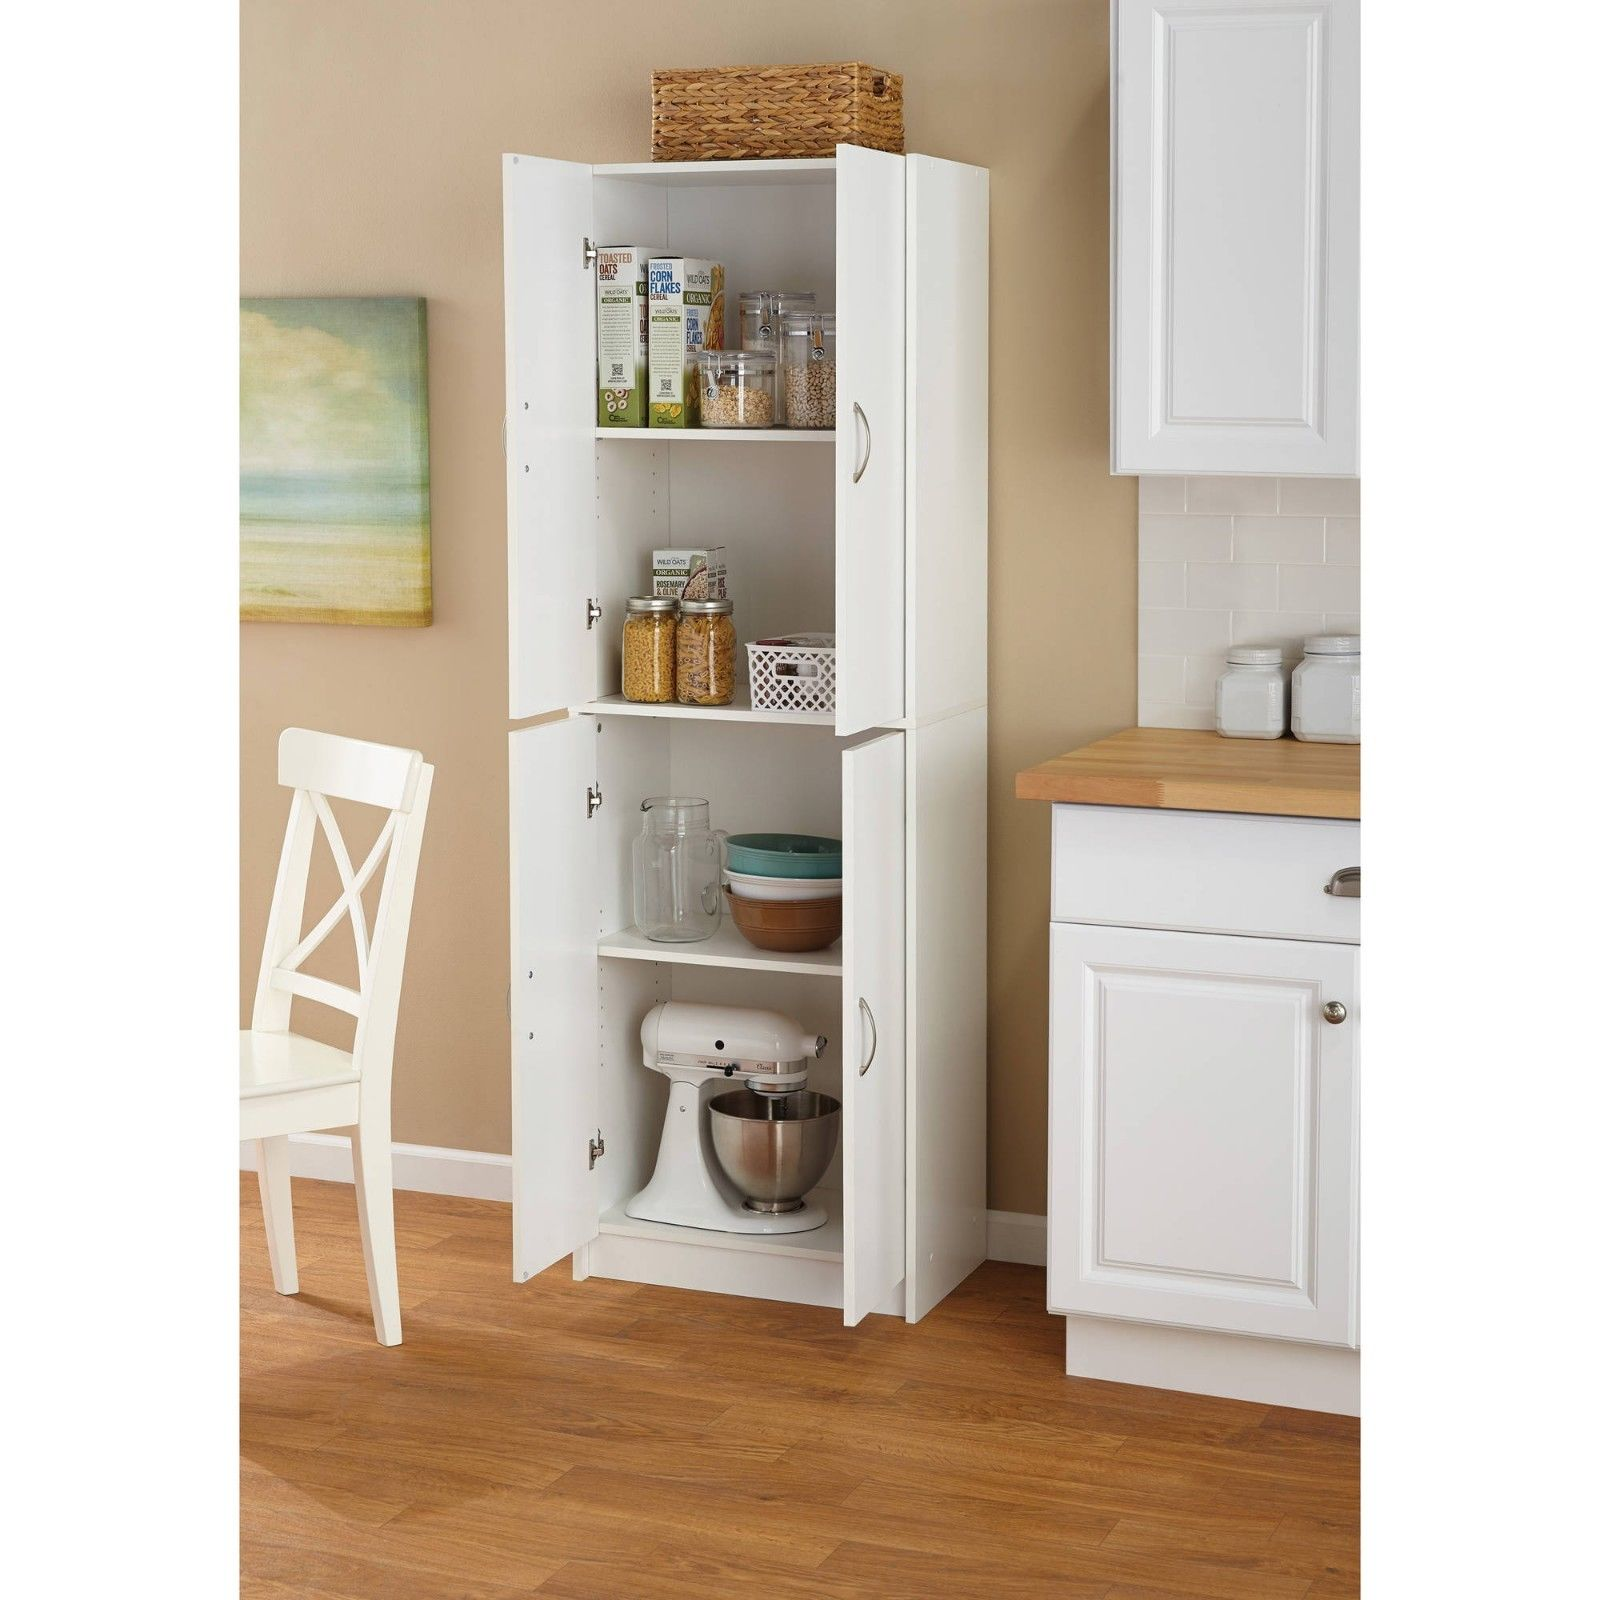 Food Pantry Storage White Kitchen Cabinet 4 Door Cupboard Organizer 4 Shelves 1